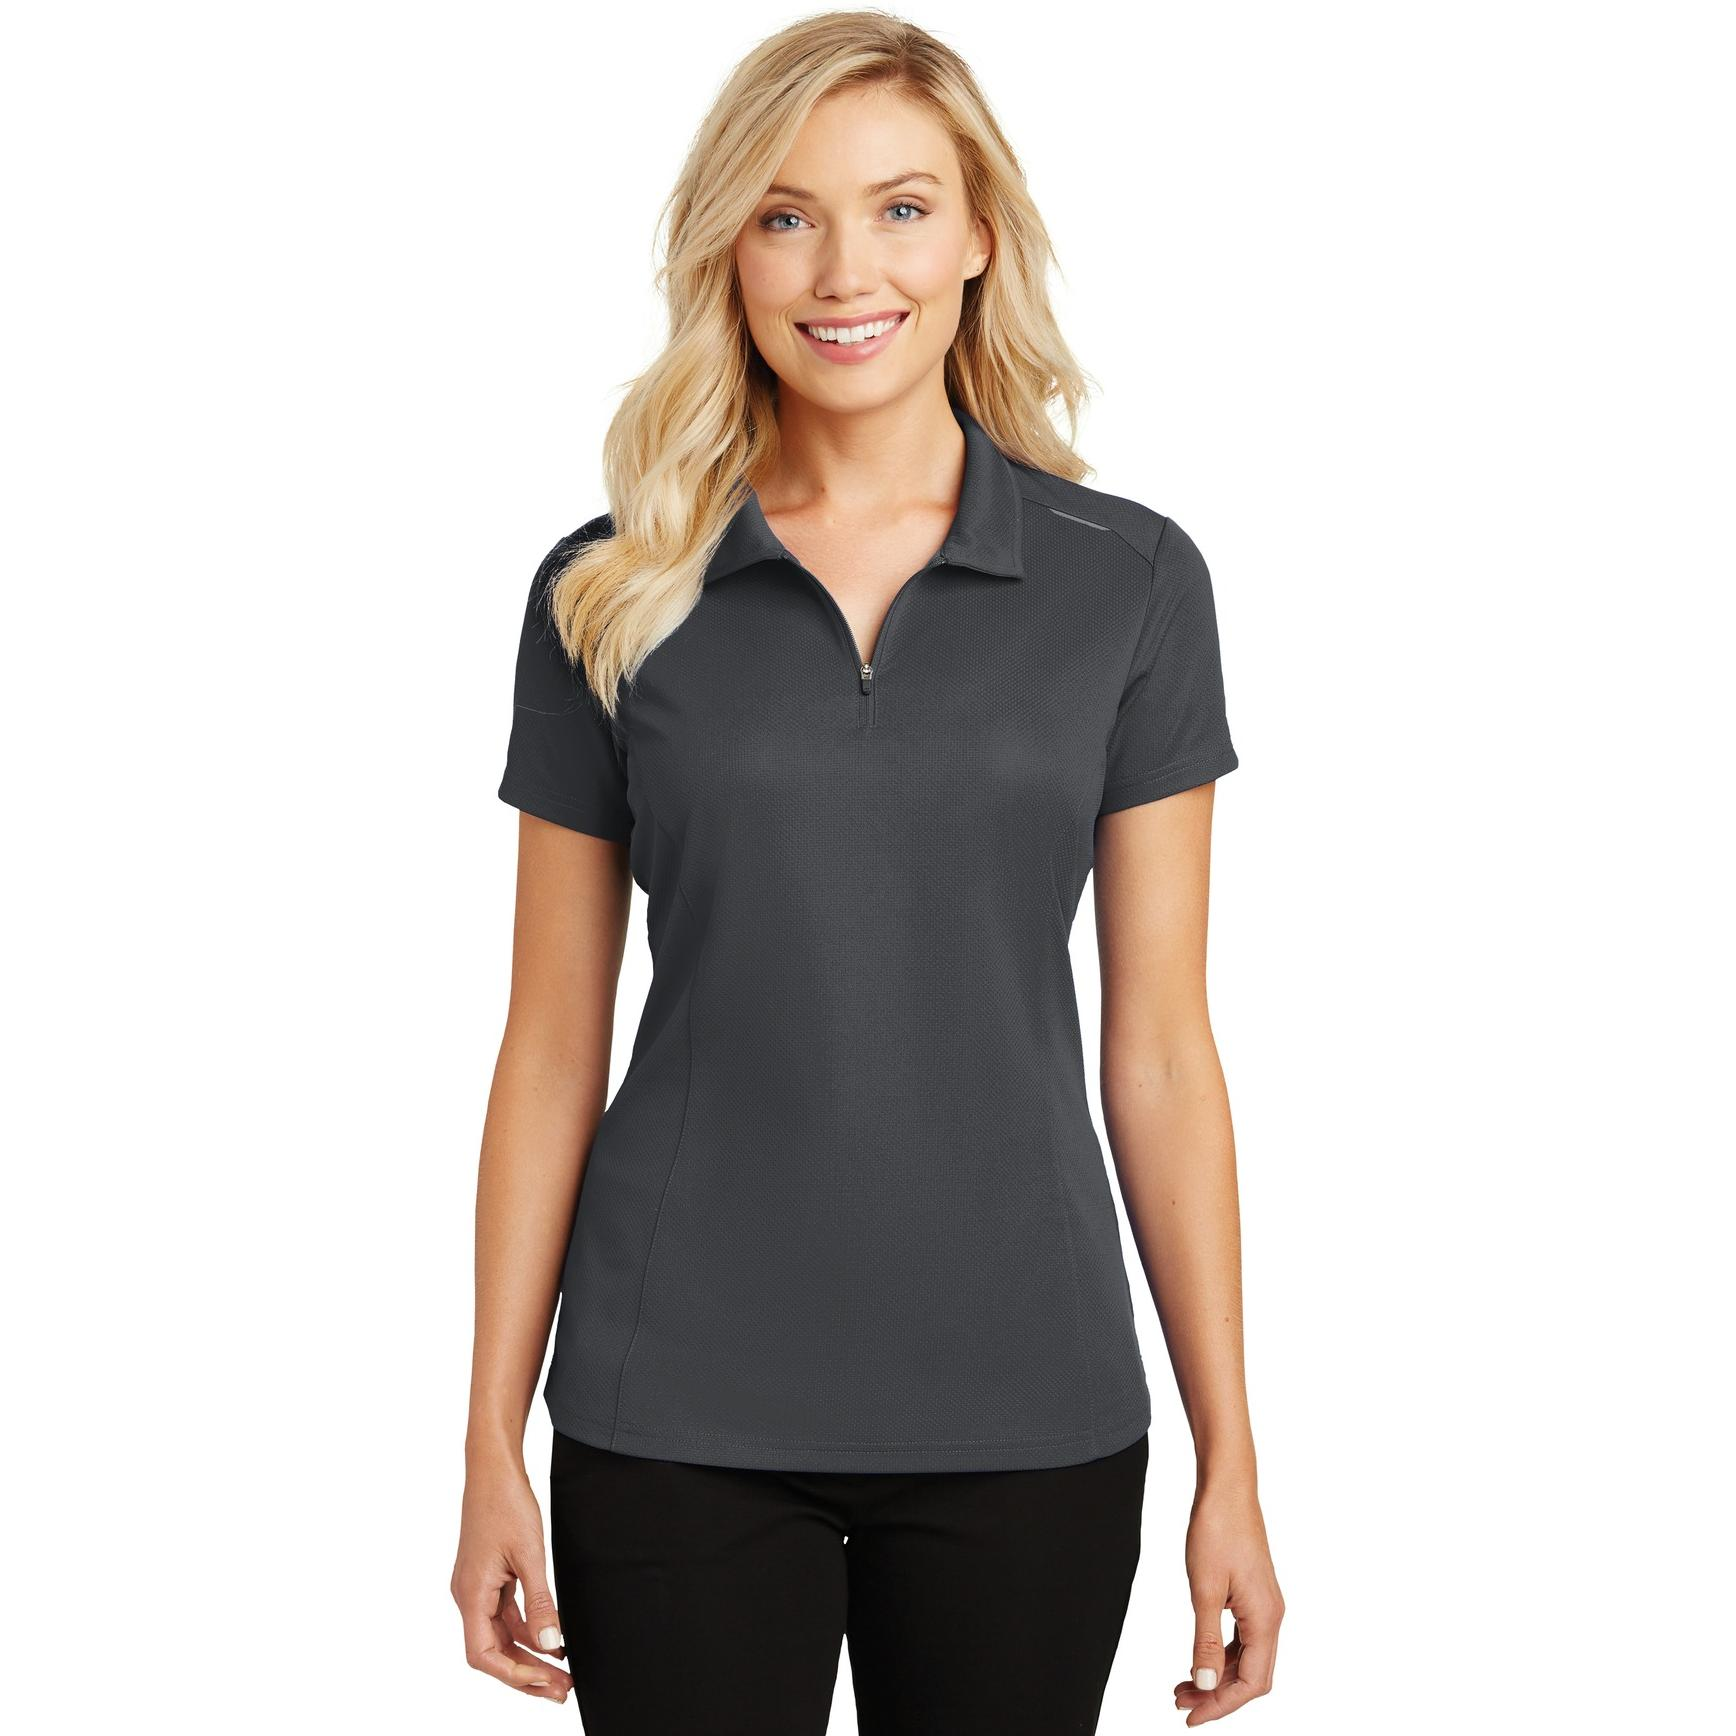 9e556b2f002 Port Authority L580 Ladies Pinpoint Mesh Polo - Battleship Grey ...